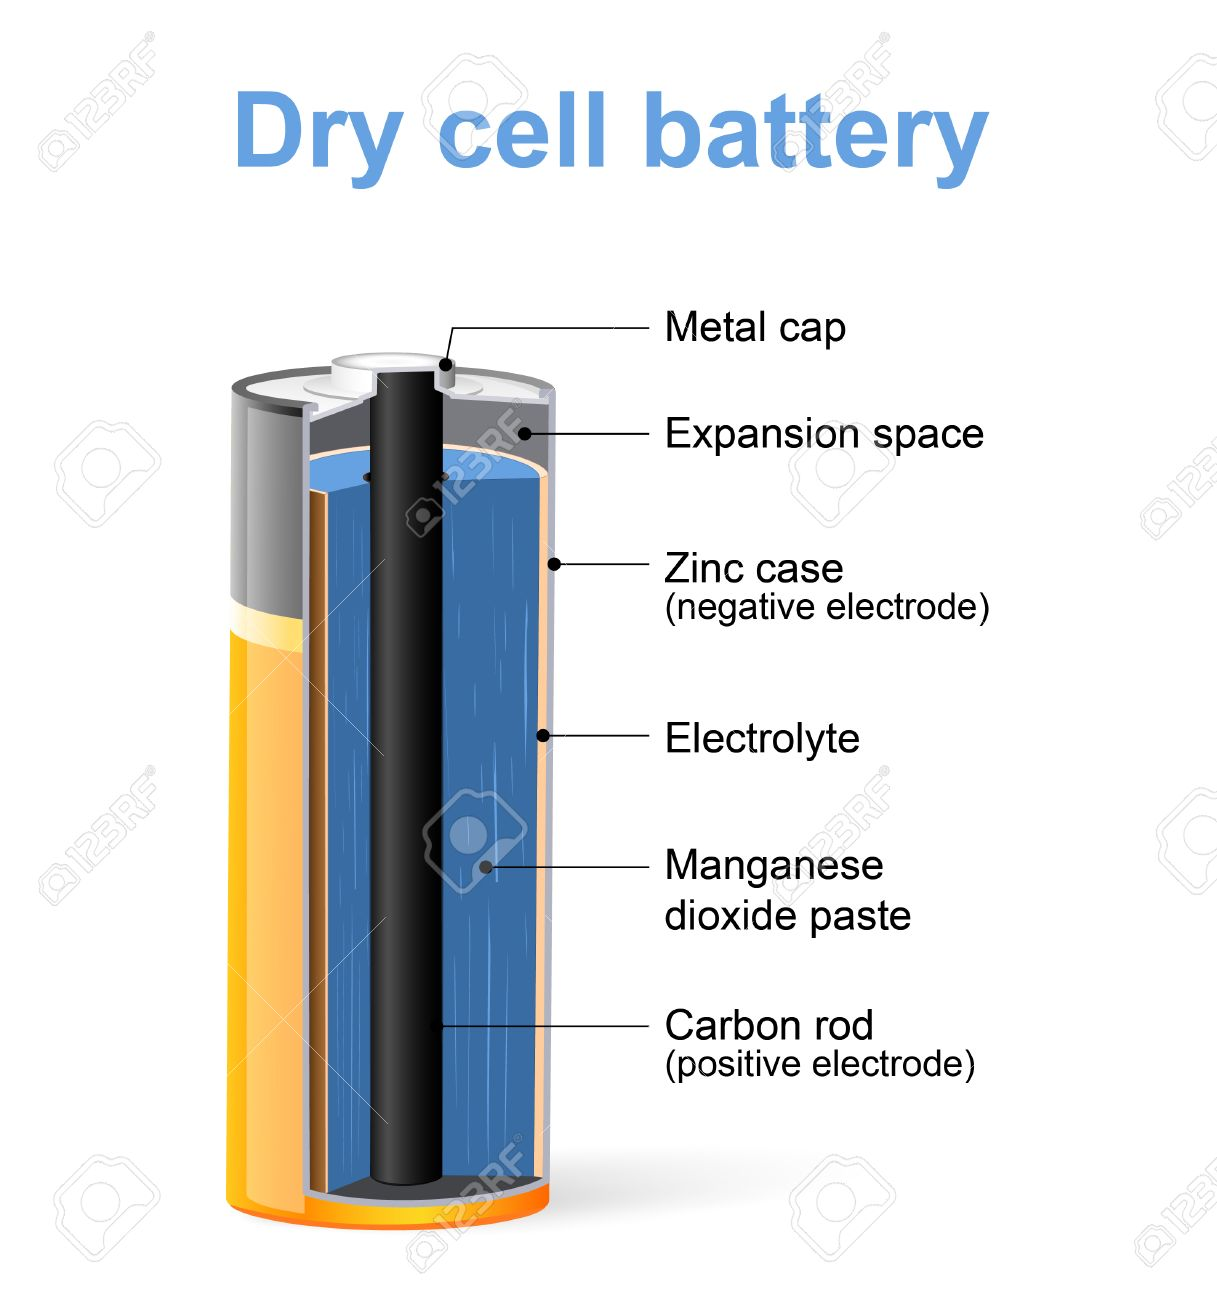 parts of a dry cell battery vector diagram royalty free cliparts Figure of a Dry Cell parts of a dry cell battery vector diagram stock vector 63923671